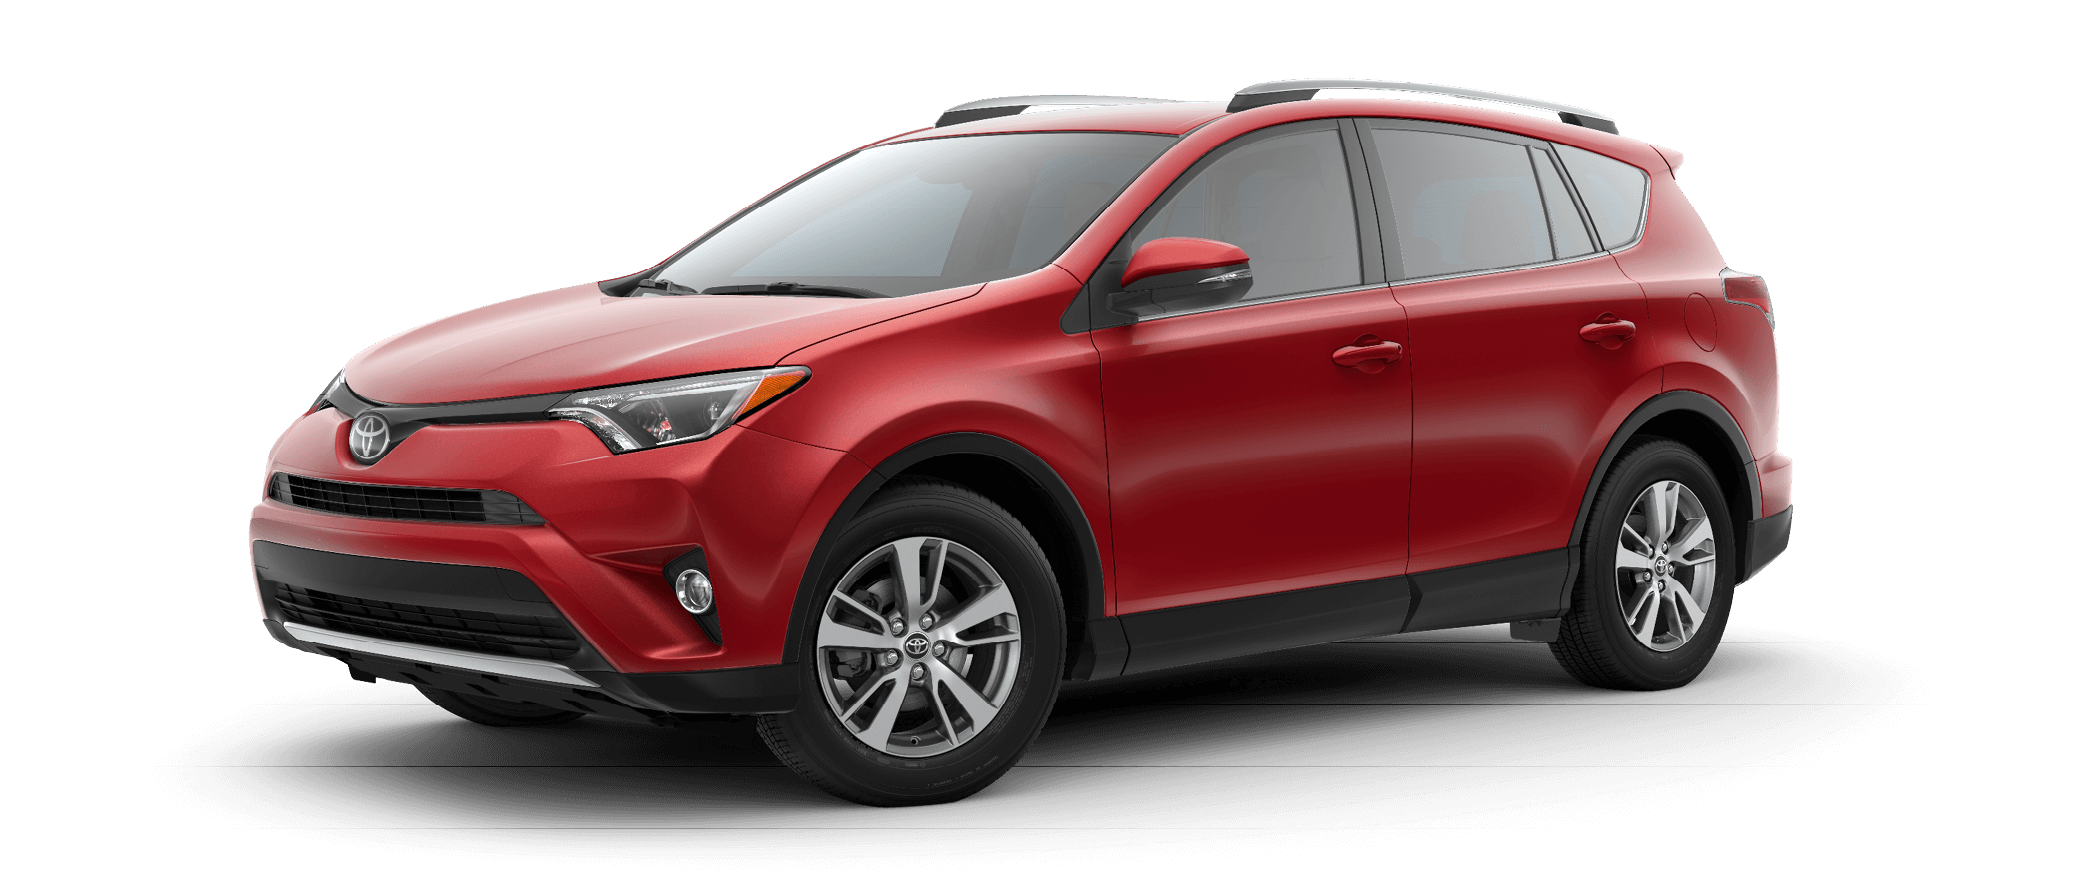 clip art library download Minivan clipart red suv. Berglund toyota new dealership.